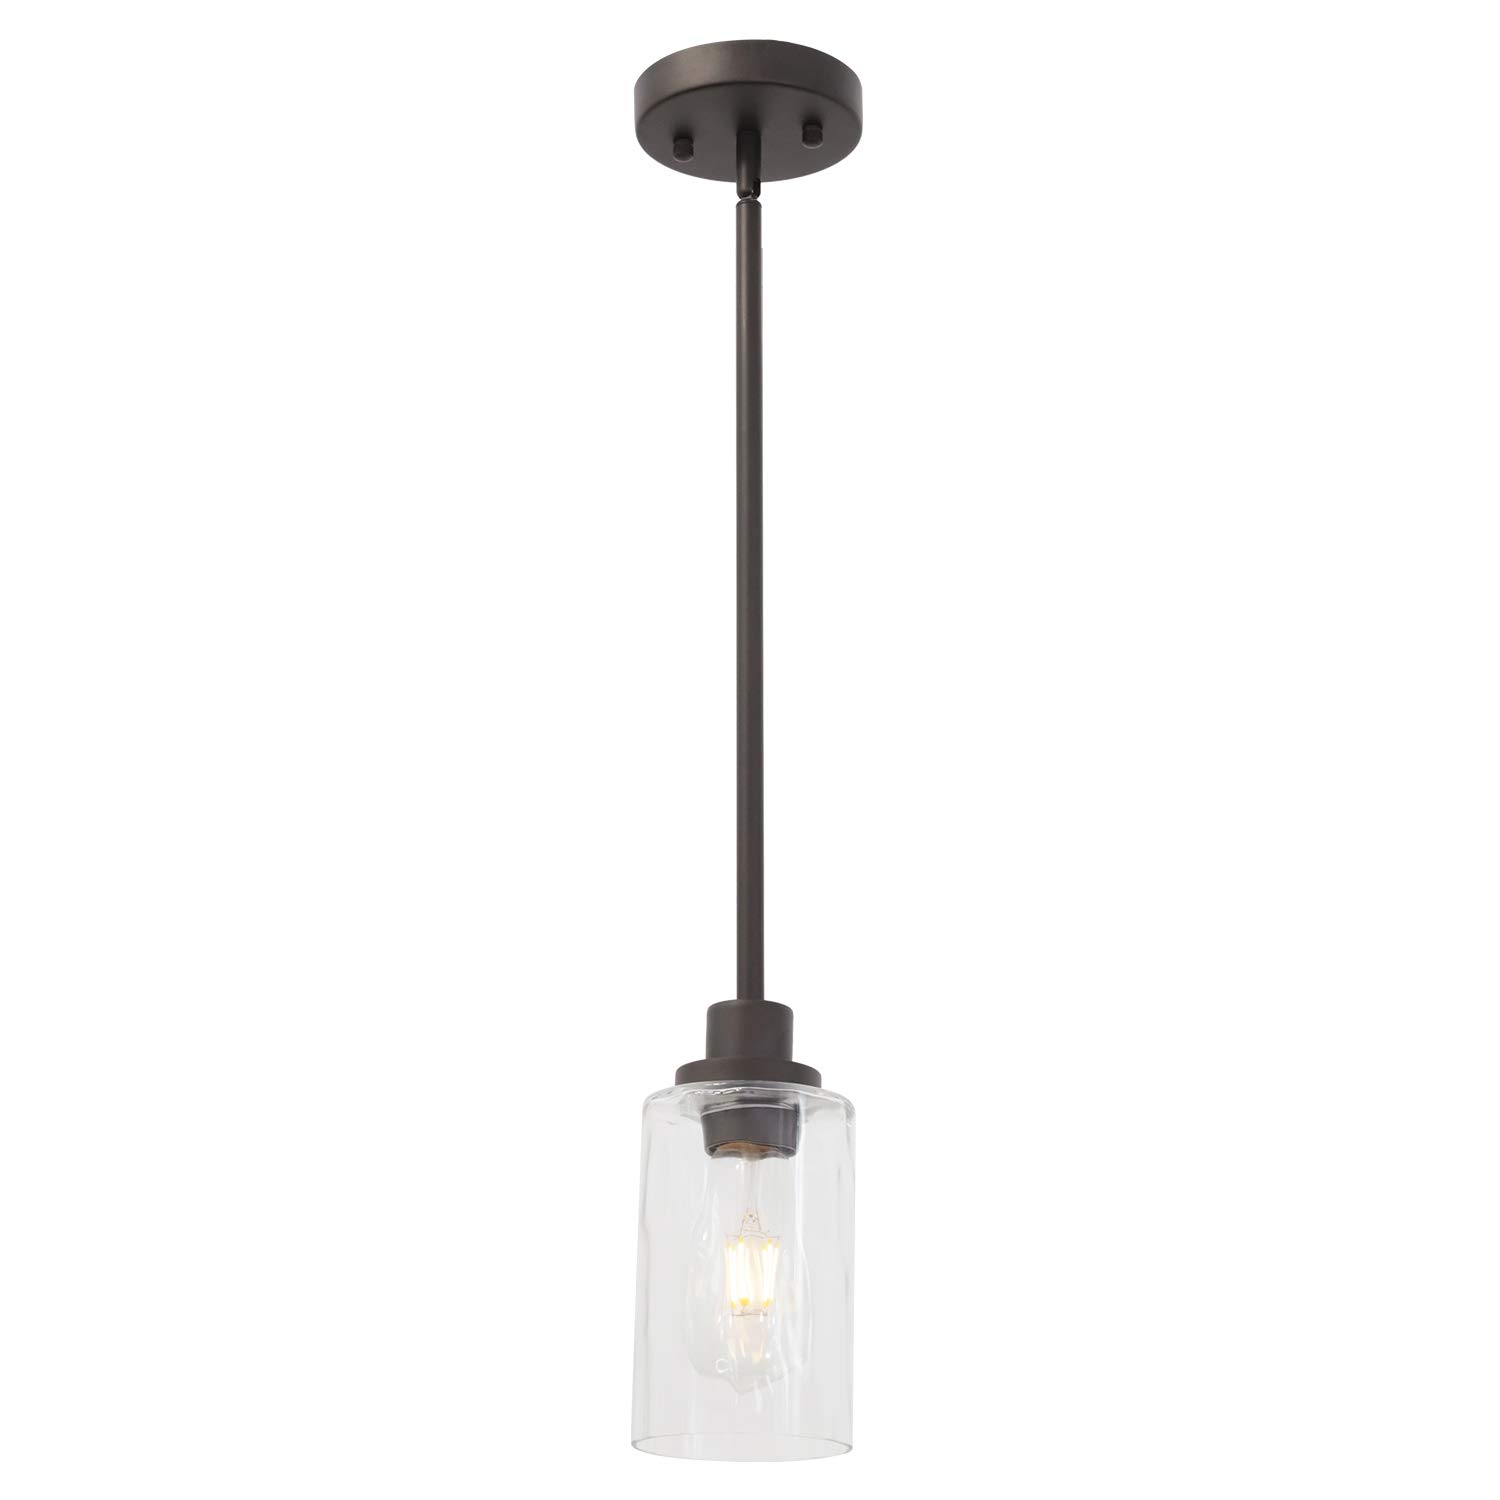 TODOLUZ Single Light Clear Cylinder Glass Shade Oil Rubbed Bronze Hanging Pendant Light Modern Fixture for Kitchen Dining Room Bedroom